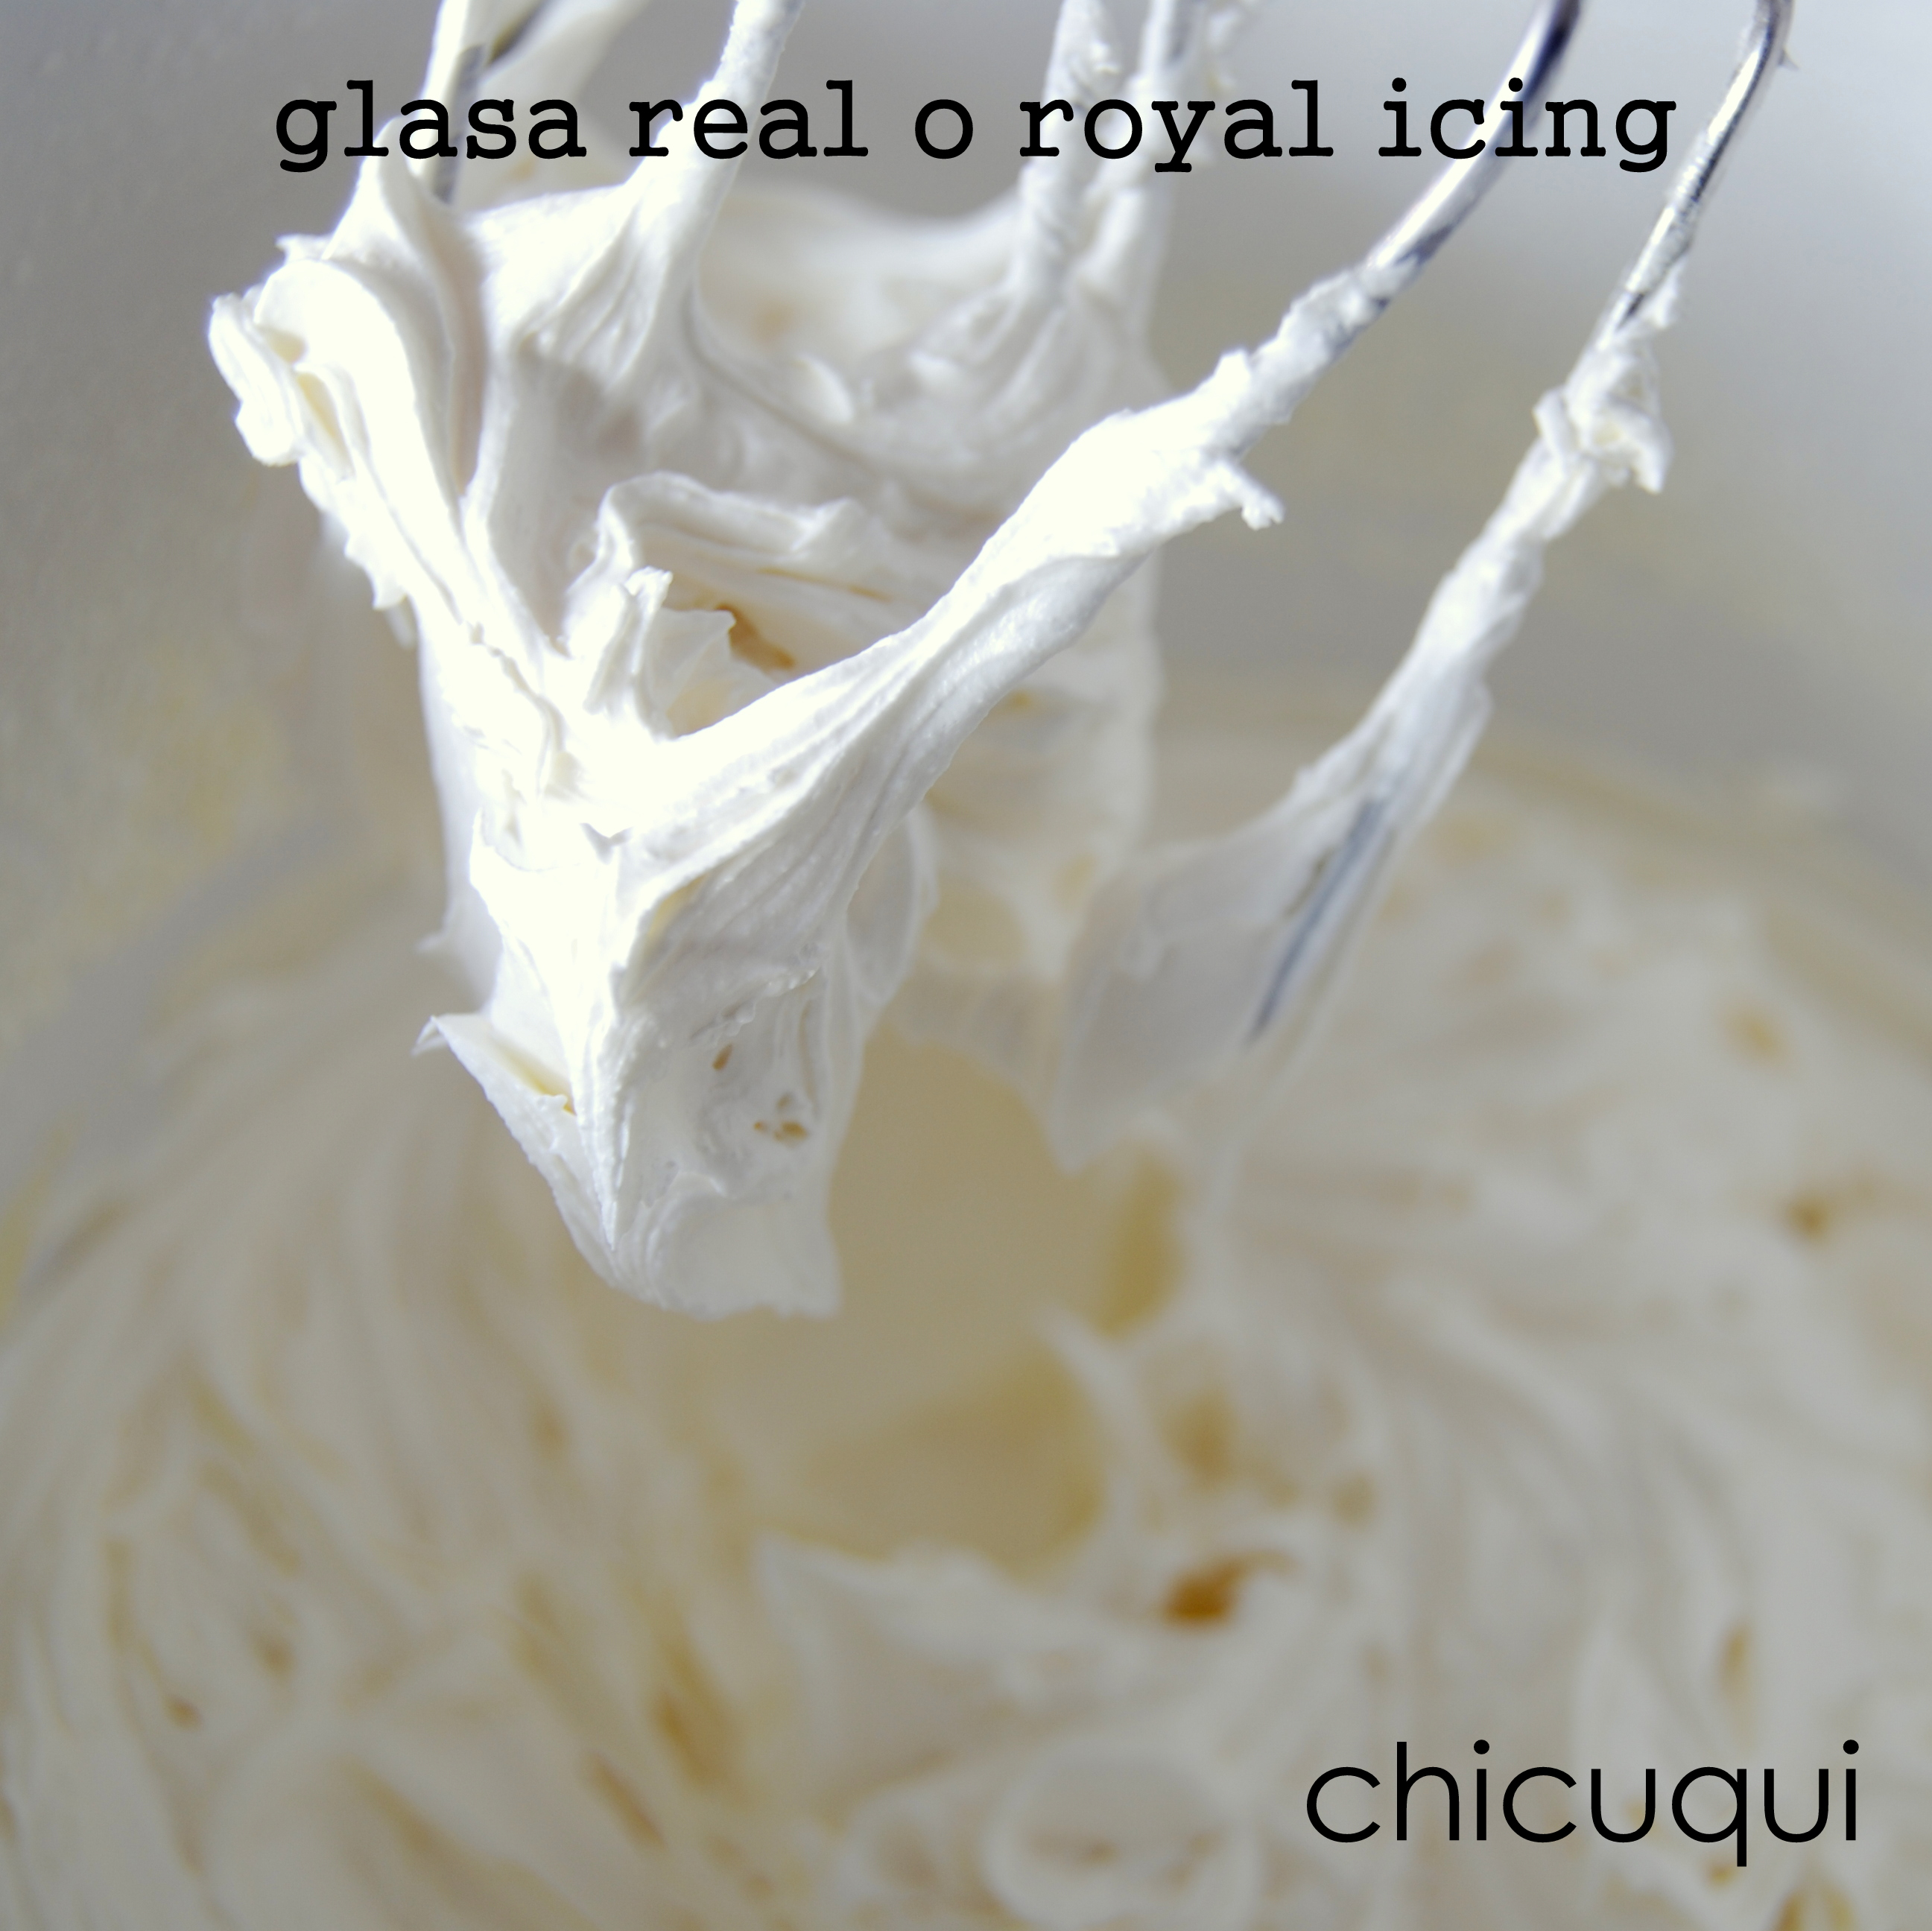 Glasa real o royal icing